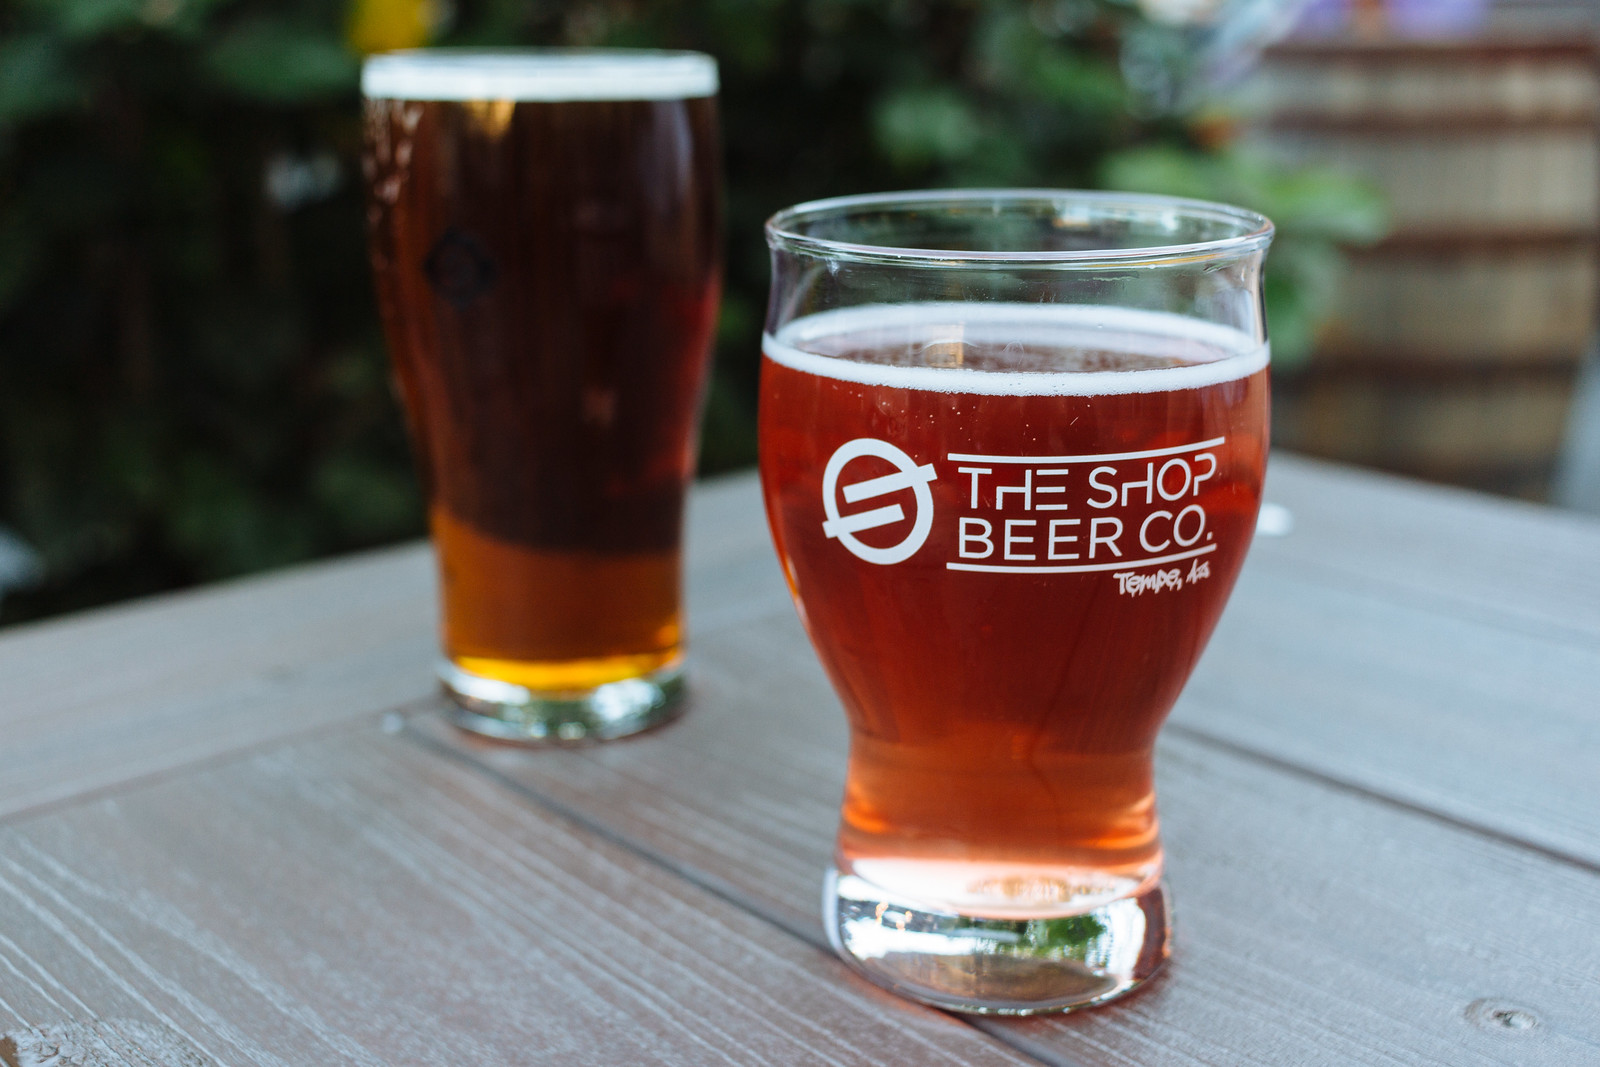 Two glasses of beer on a wooden table